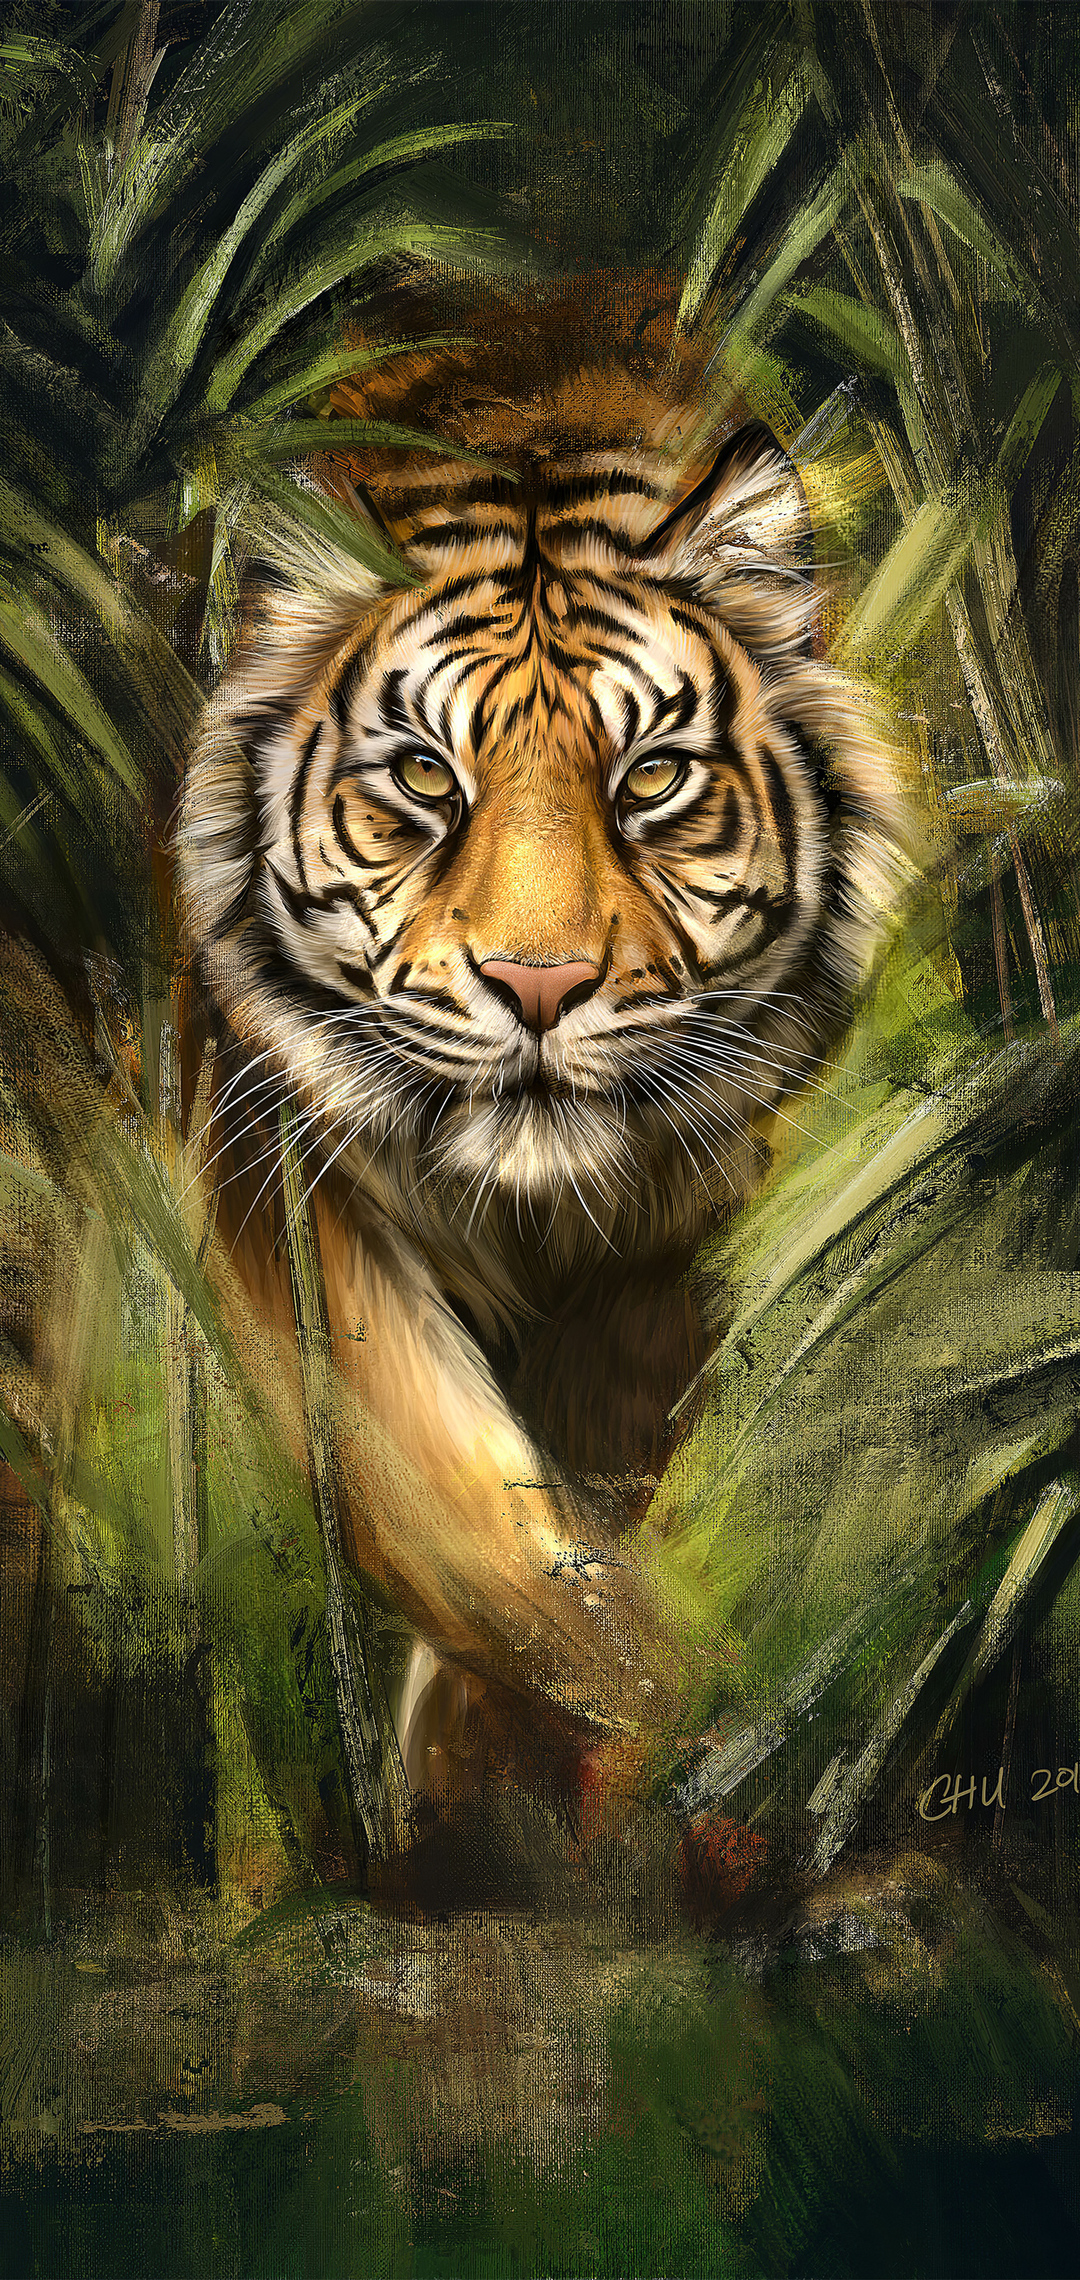 tiger-painting-art-pn.jpg